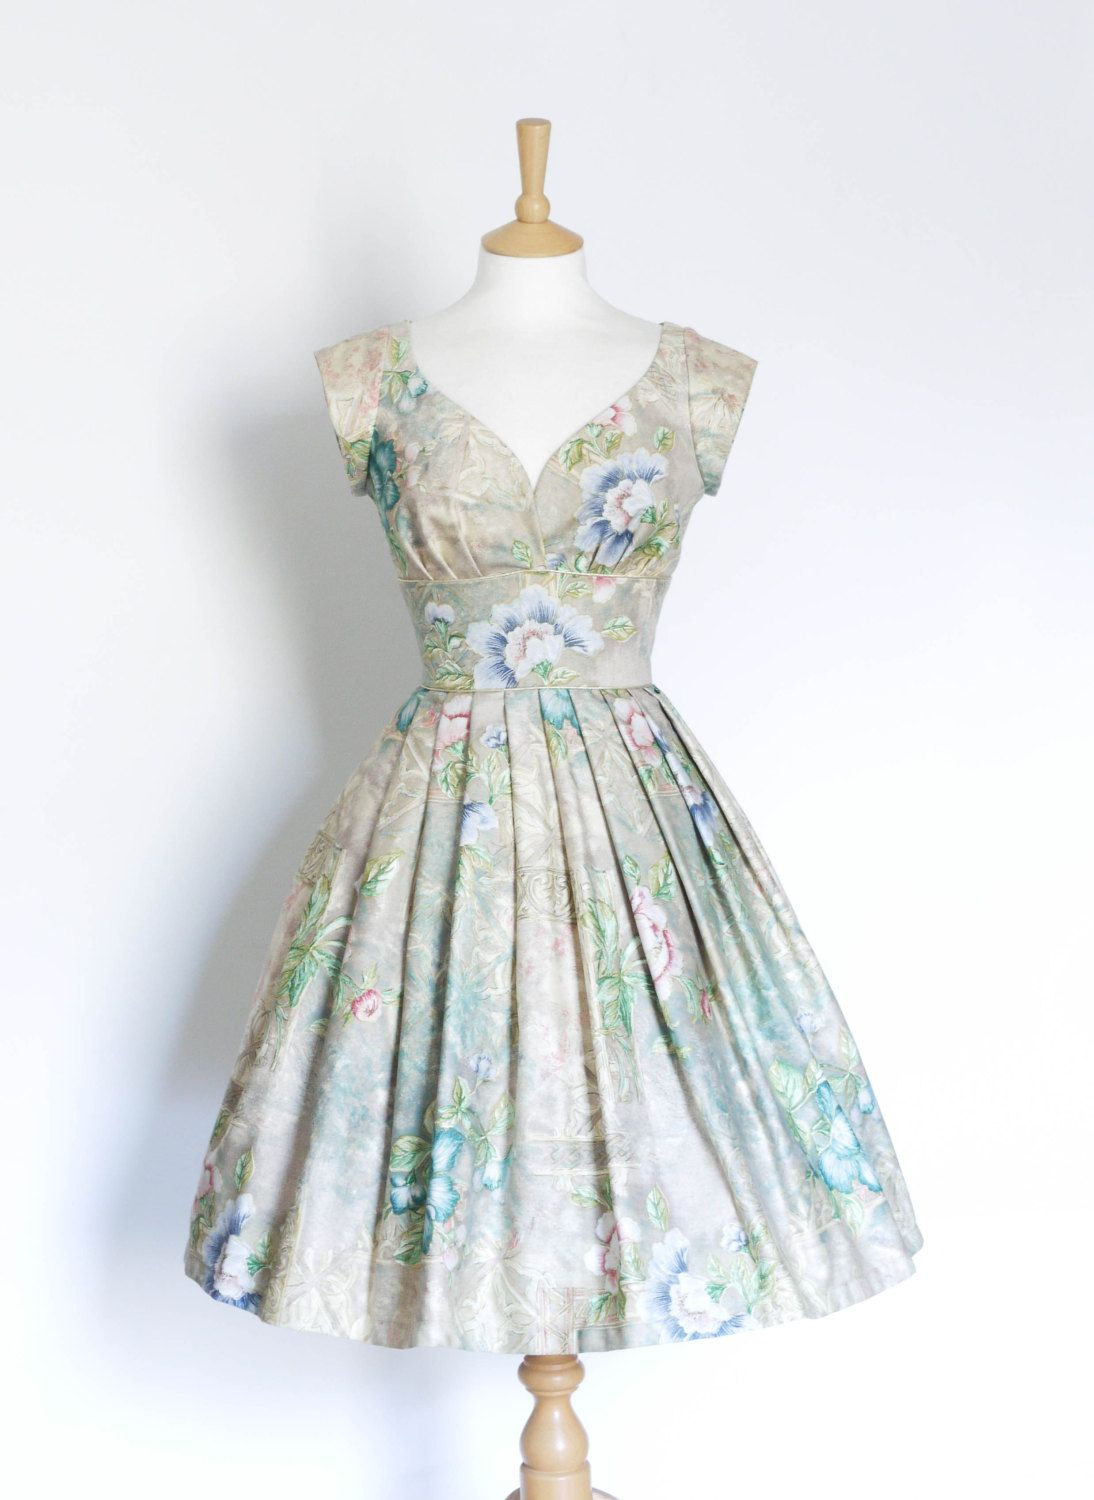 Teal Blue and Stonewashed Floral Sweetheart Prom von digforvictory